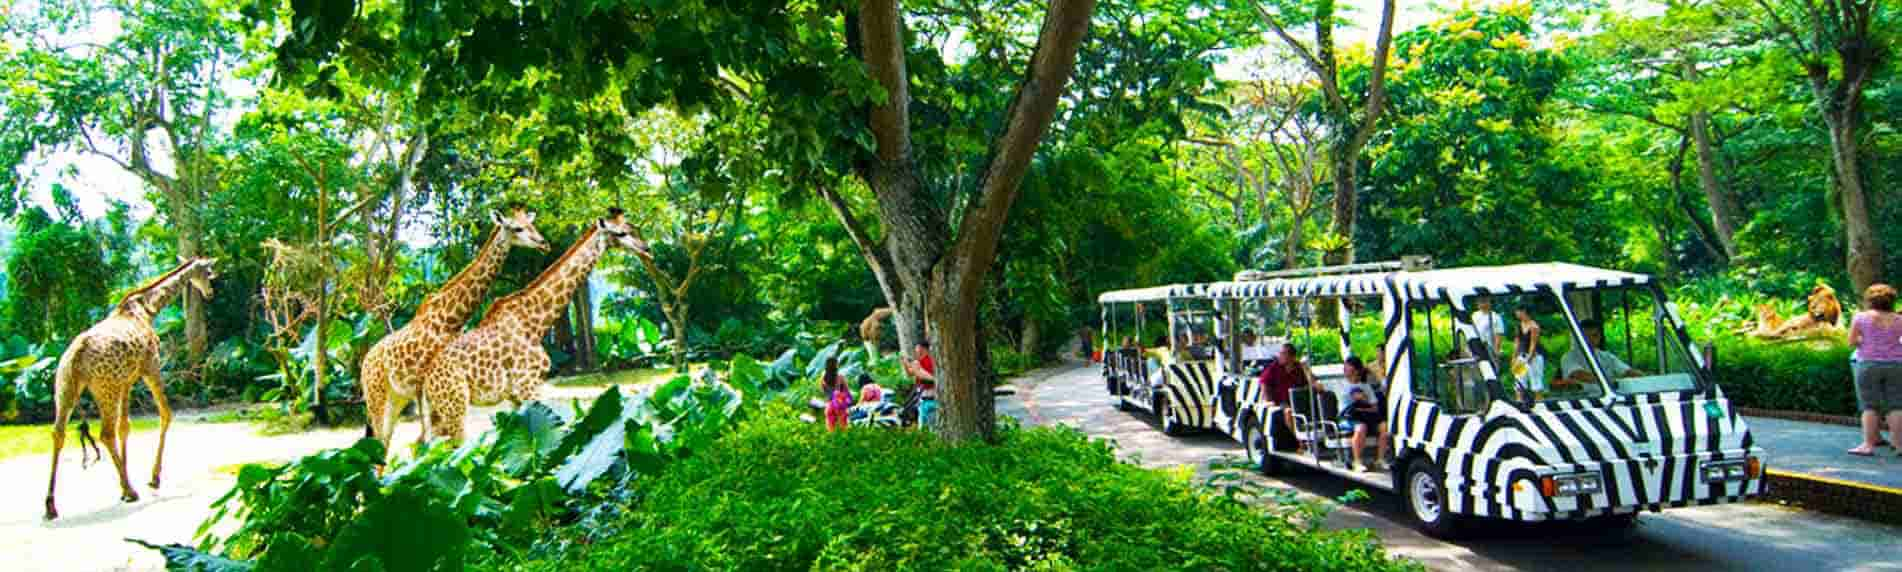 zoo with tram ride